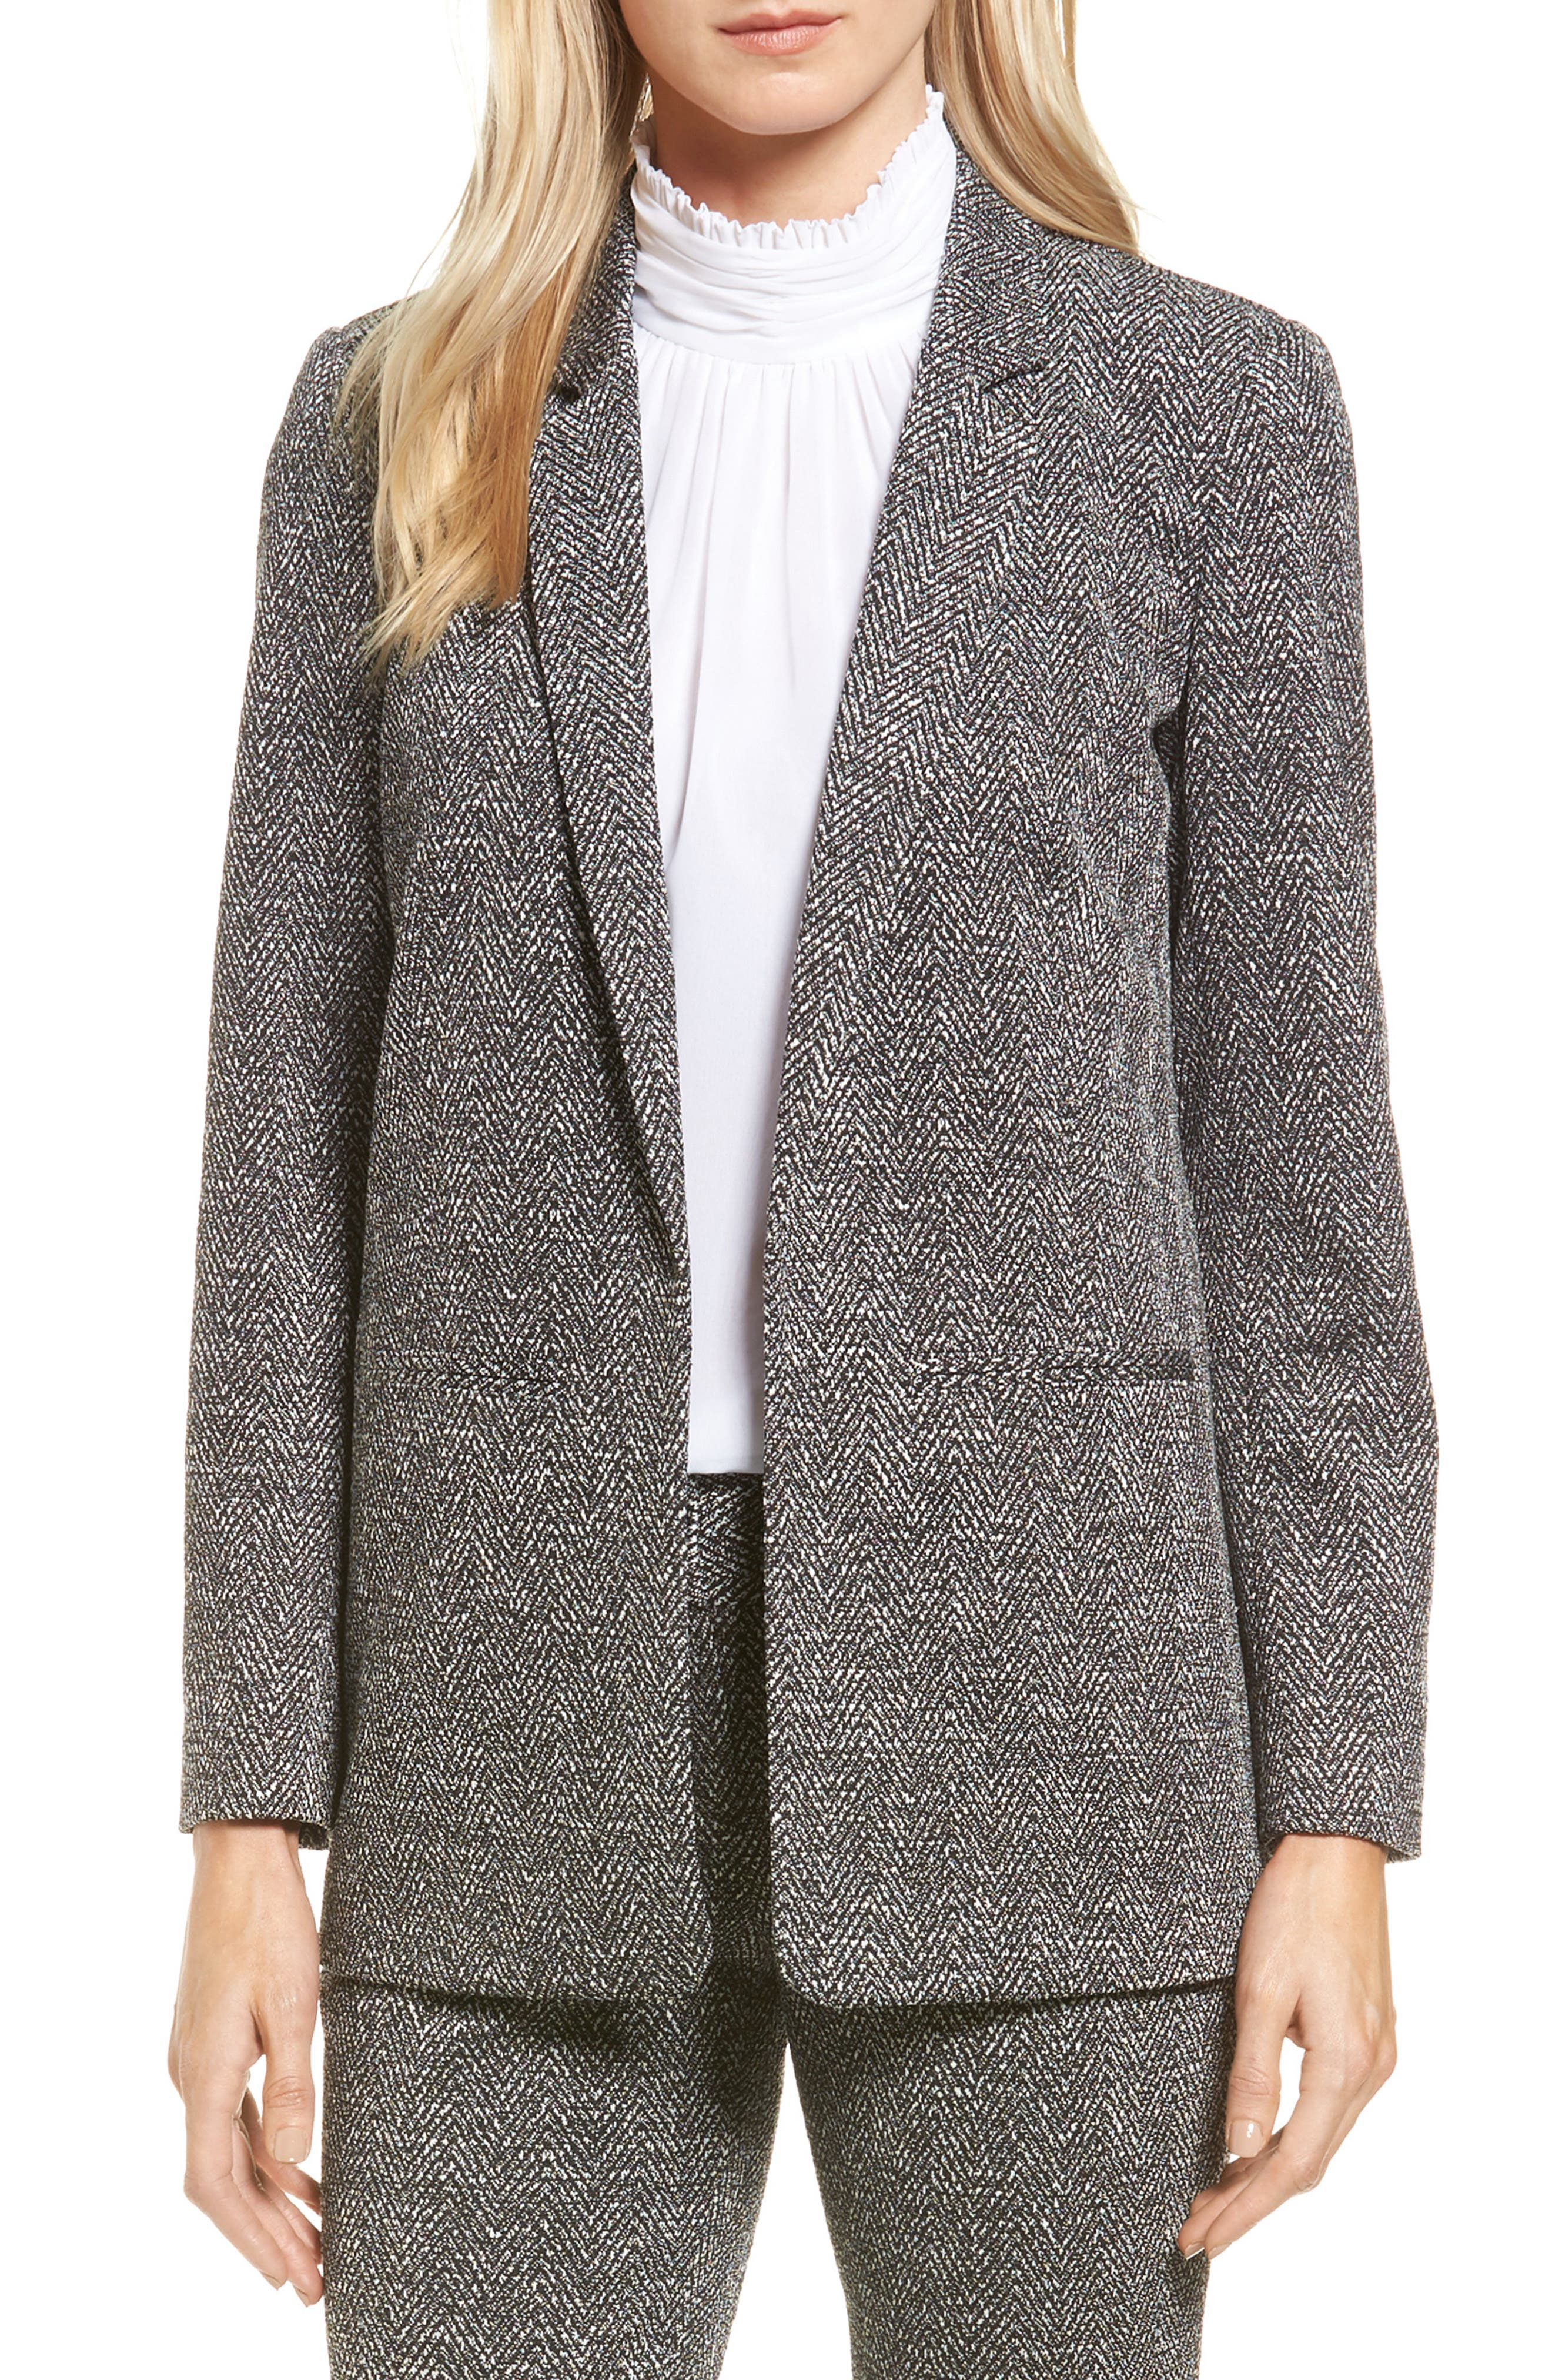 Vince Camuto Herringbone Jacquard Open Front Jacket